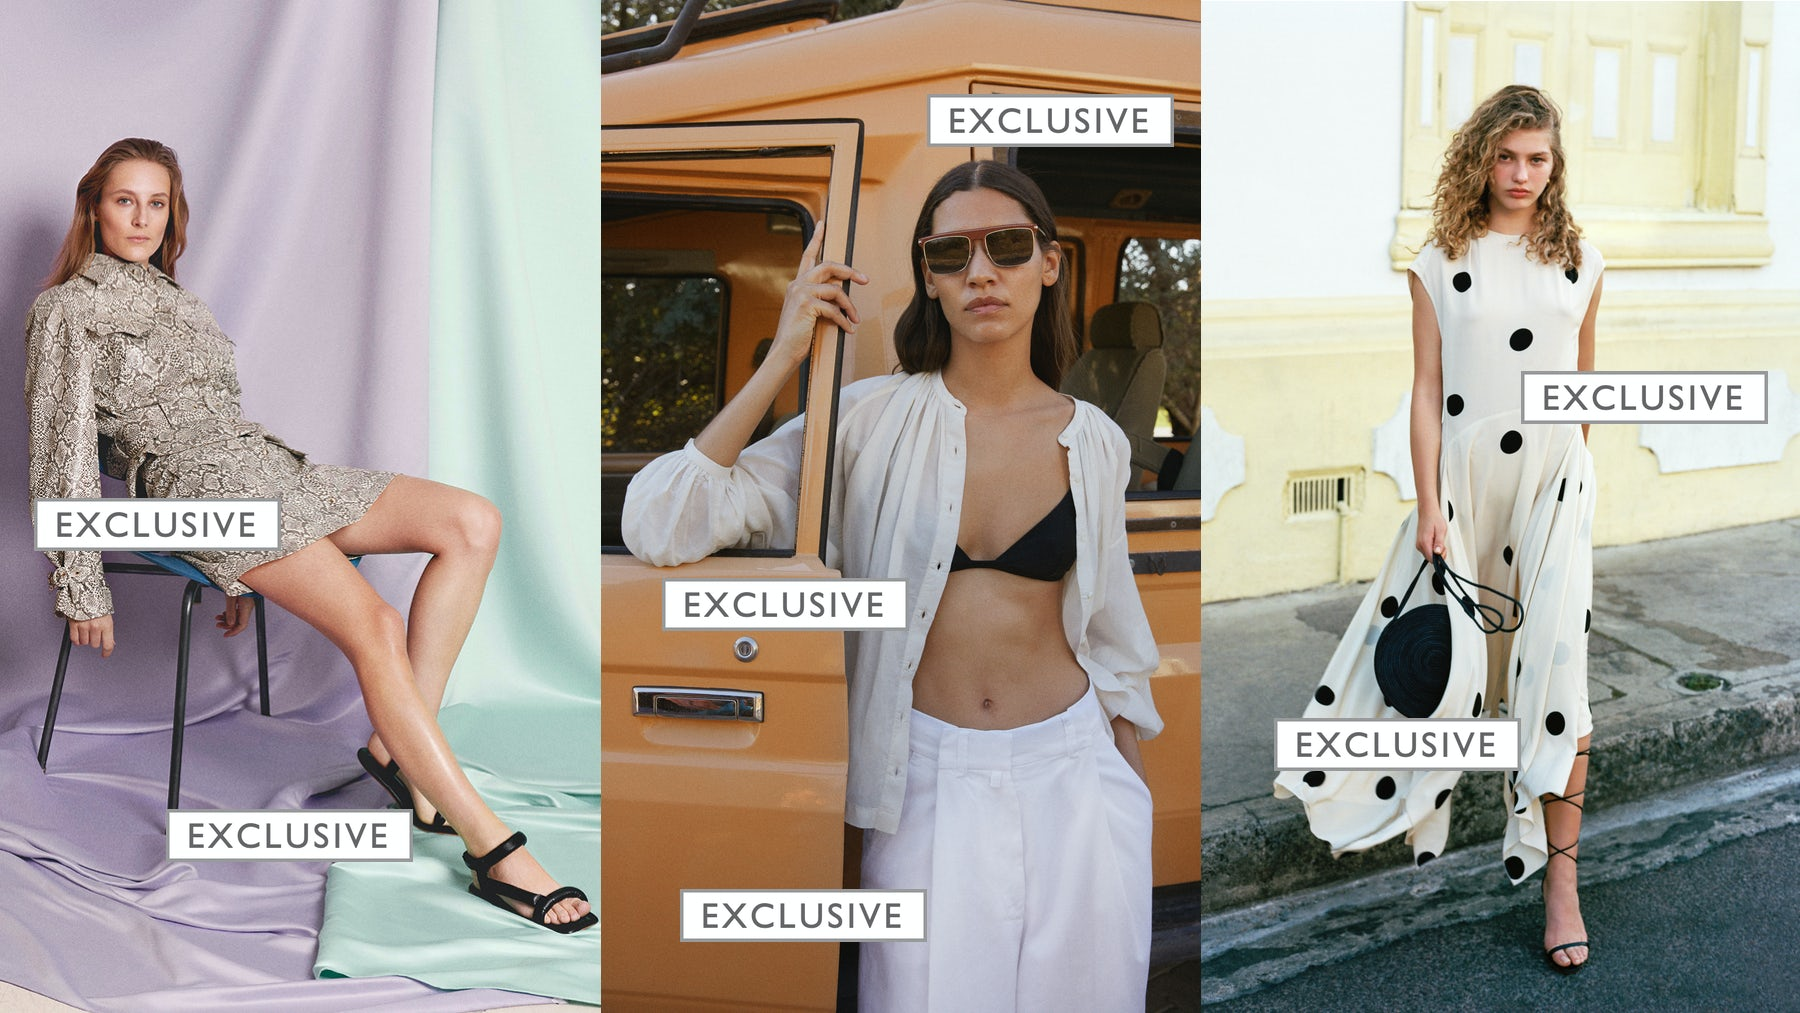 Nanushka exclusive capsule for MyTheresa, and exclusives by Doen and Cult Gaia for Net-a-Porter | Source: Courtesy